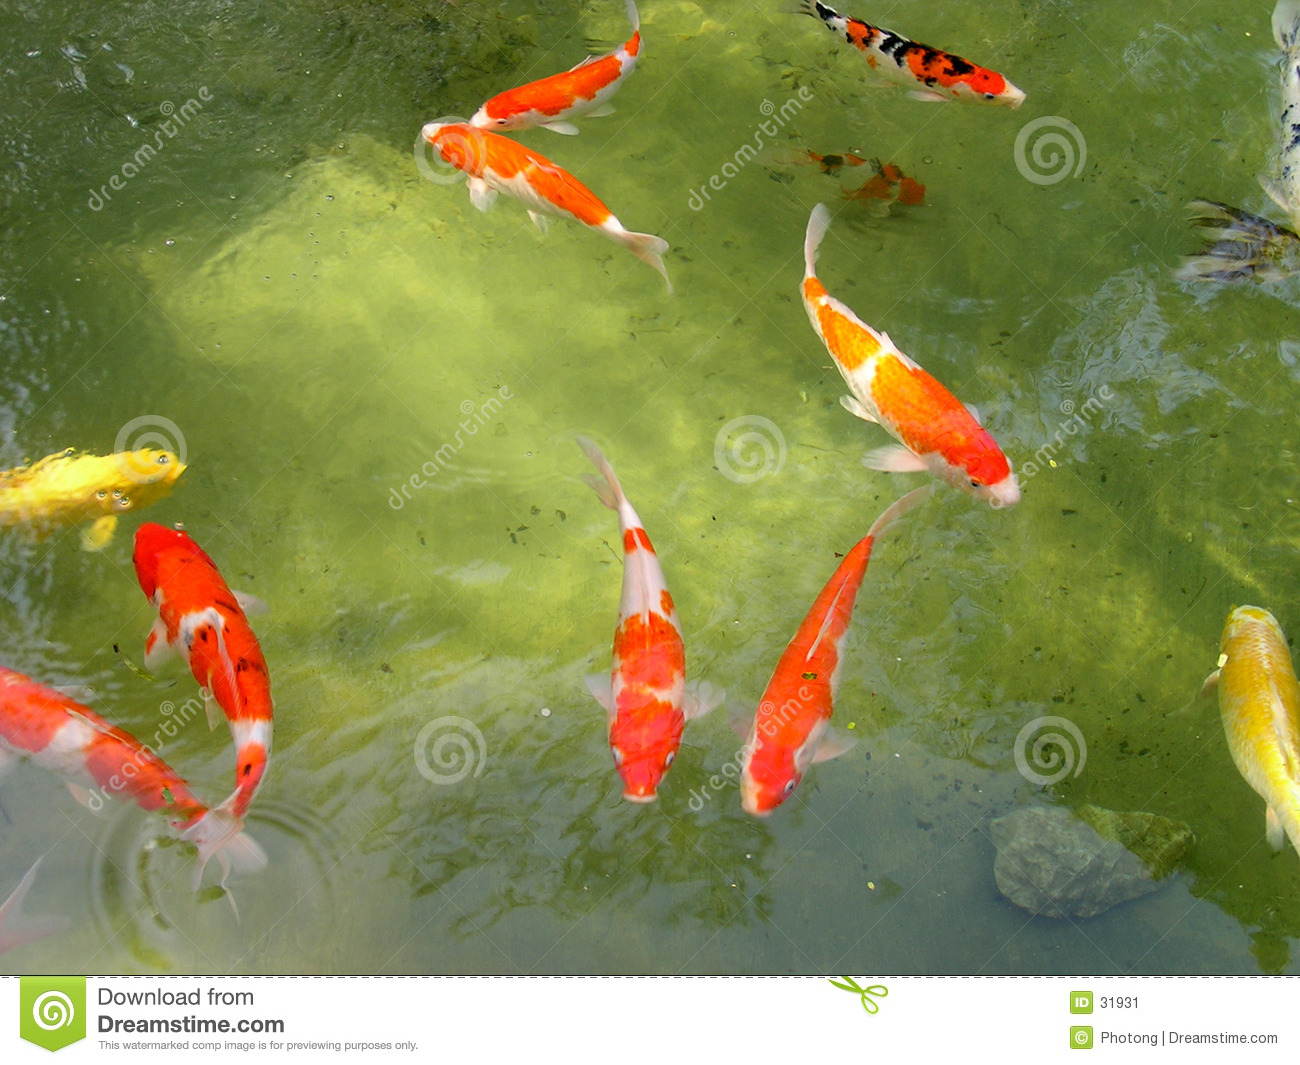 Koi fish pond stock image image of swimming carp fish for Freshwater koi fish